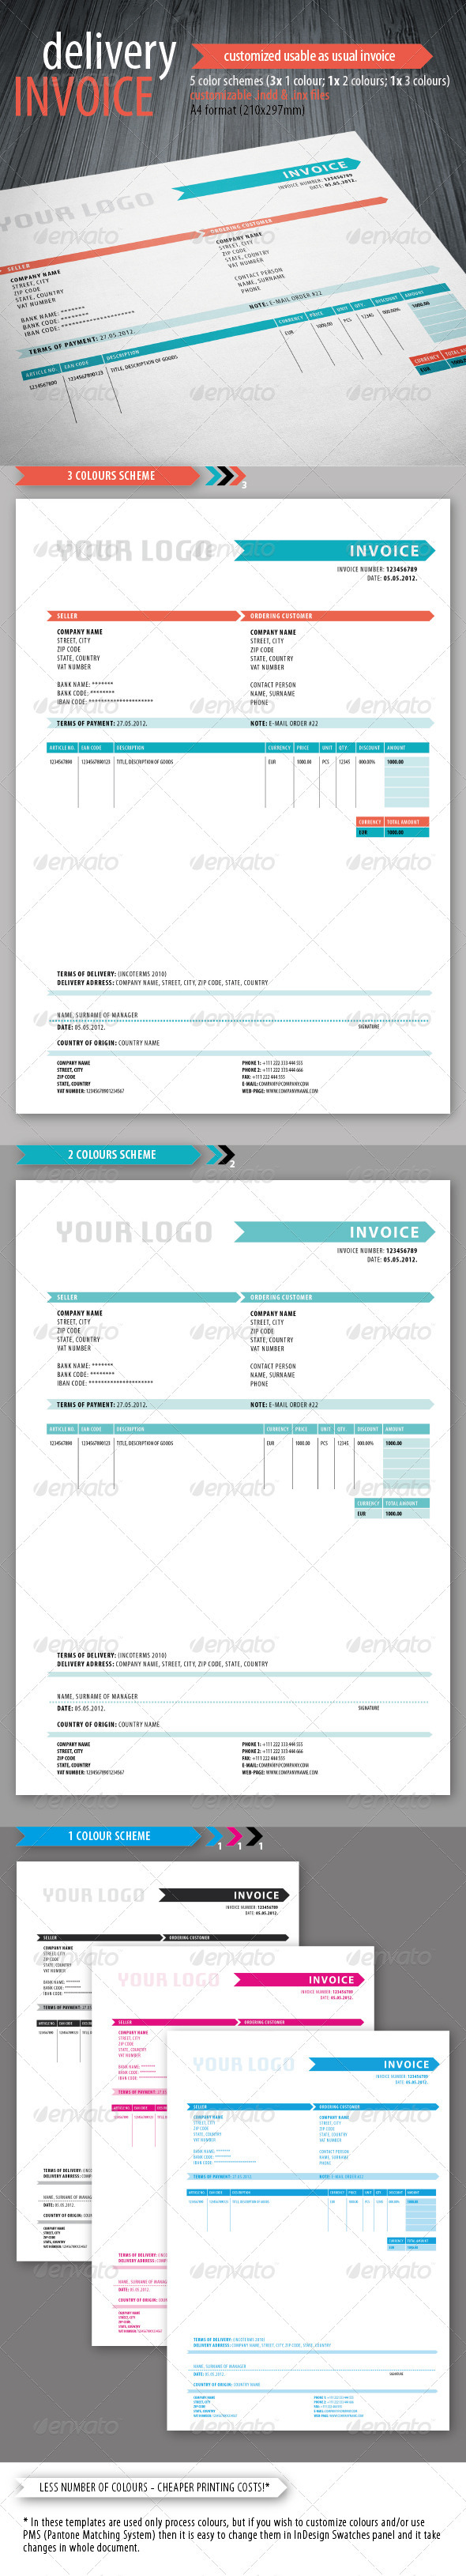 GraphicRiver Delivery Invoice Template 3301495